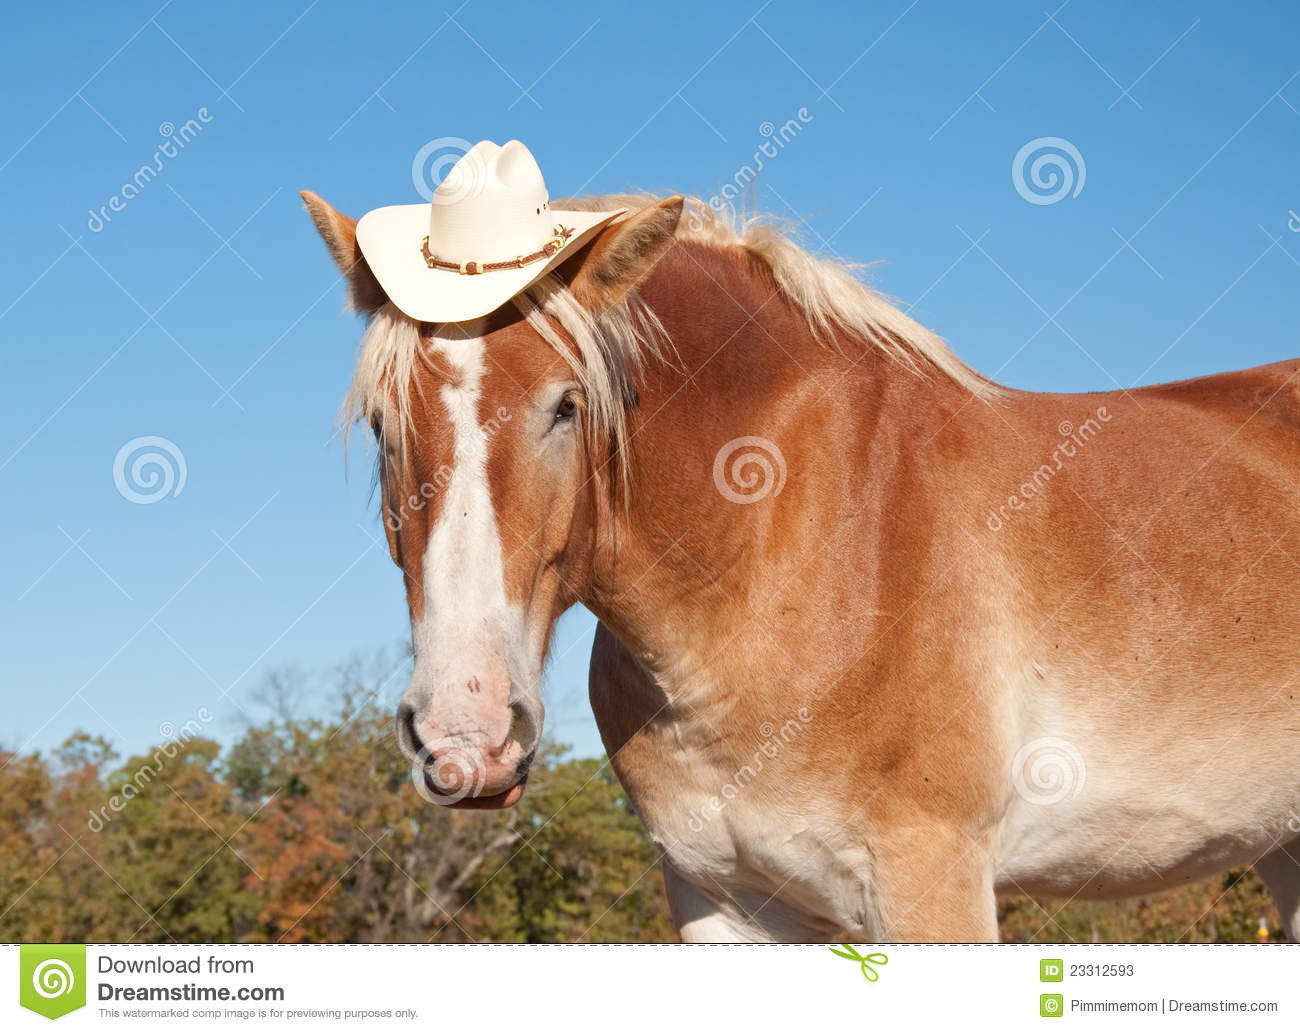 Cute Animal Summer Wallpaper Pictures Funny Image Of A Blond Belgian Draft Horse Stock Photos